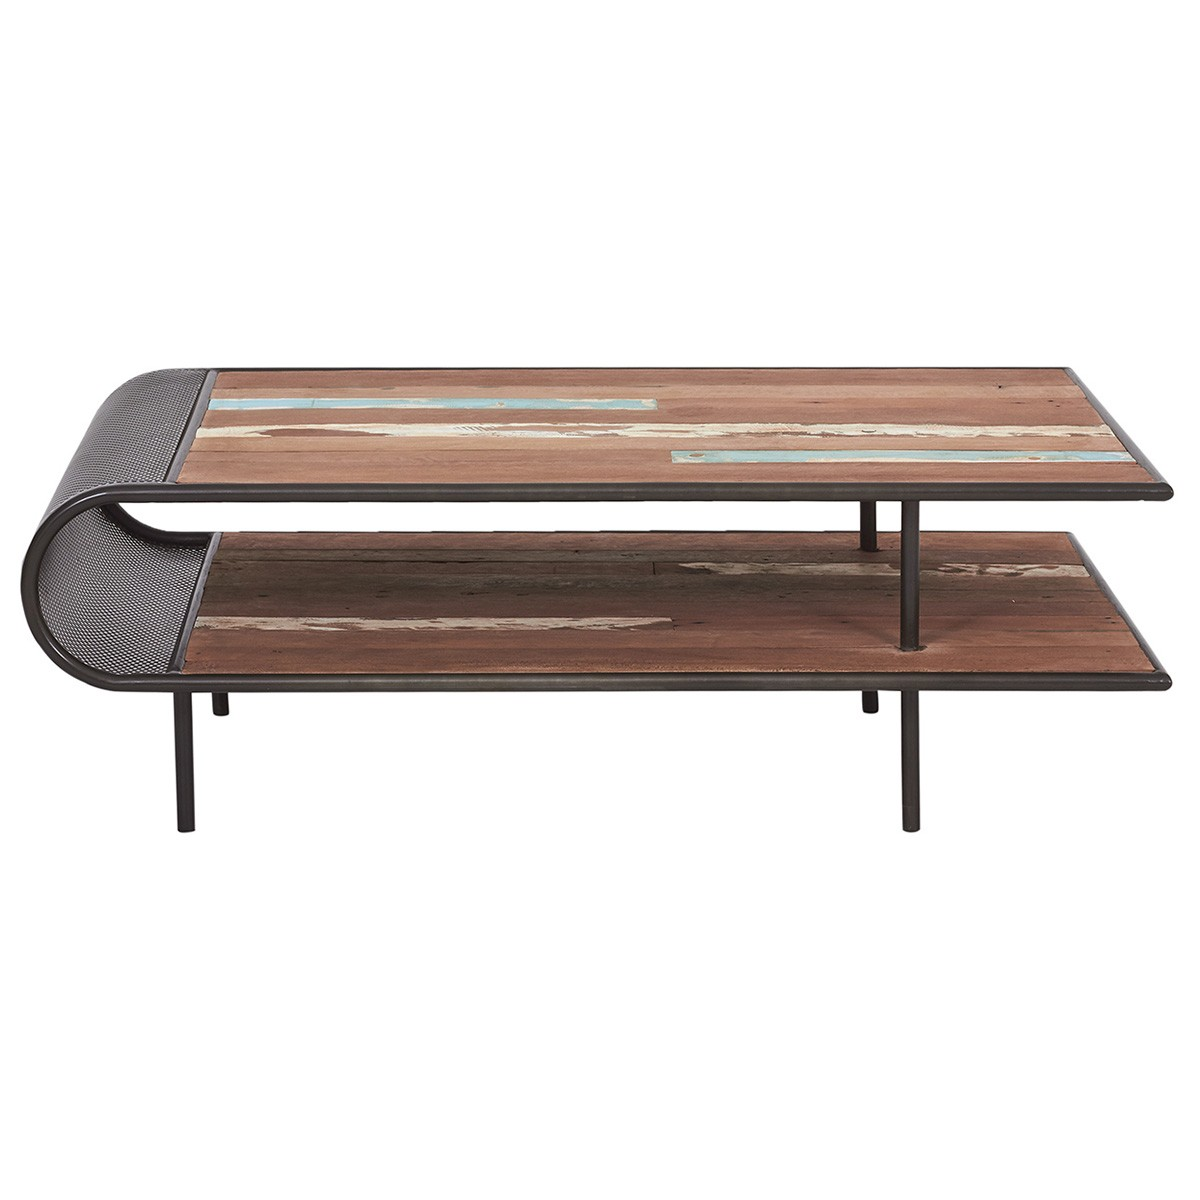 Aru Commercial Grade Industrial Recycled Timber & Iron Curve Coffee Table, 120cm